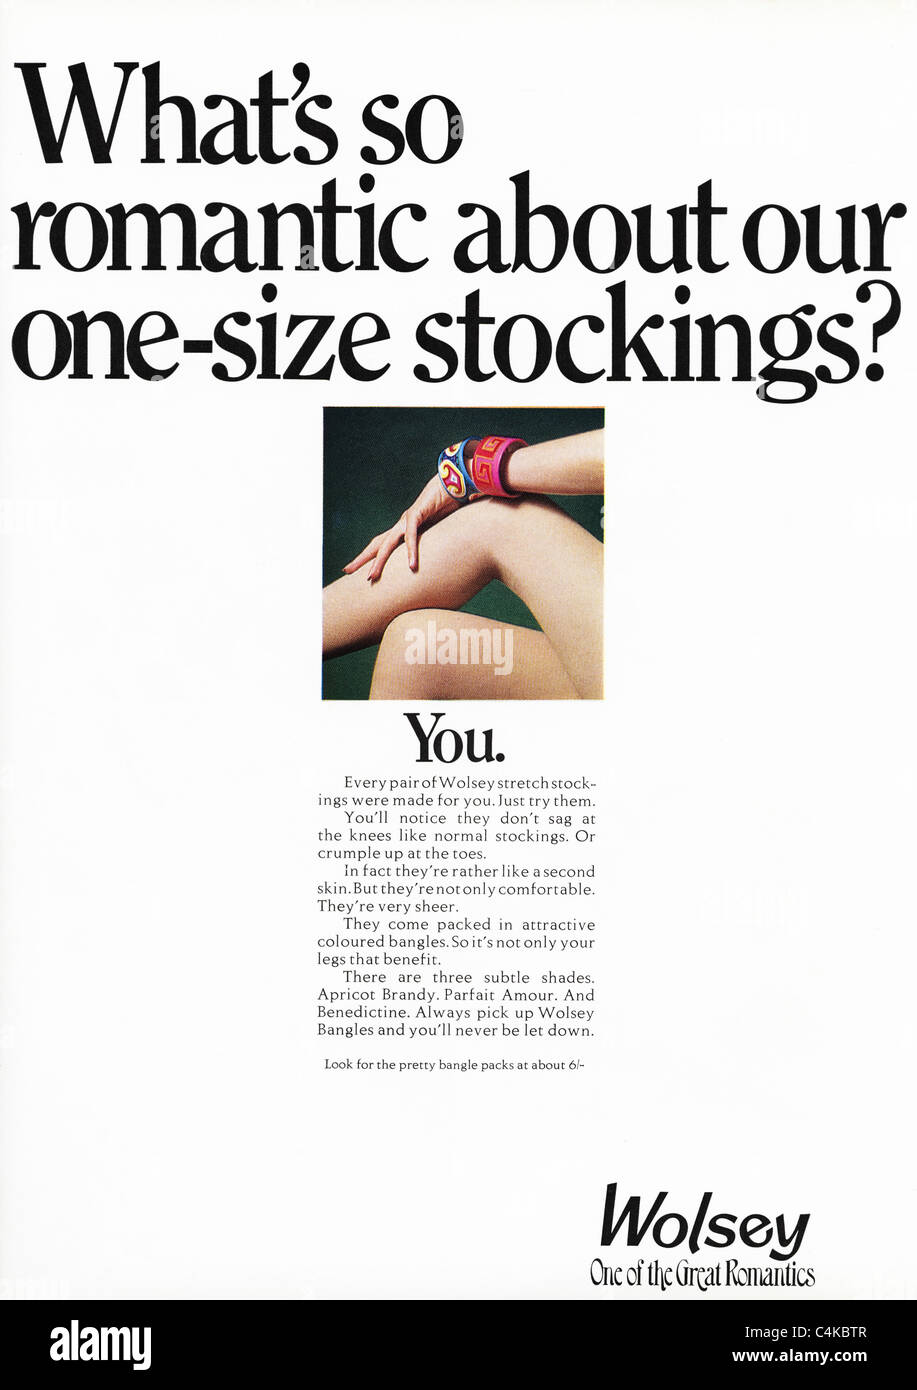 Full page original advertisement in fashion magazine circa 1969 for WOLSEY stockings - Stock Image